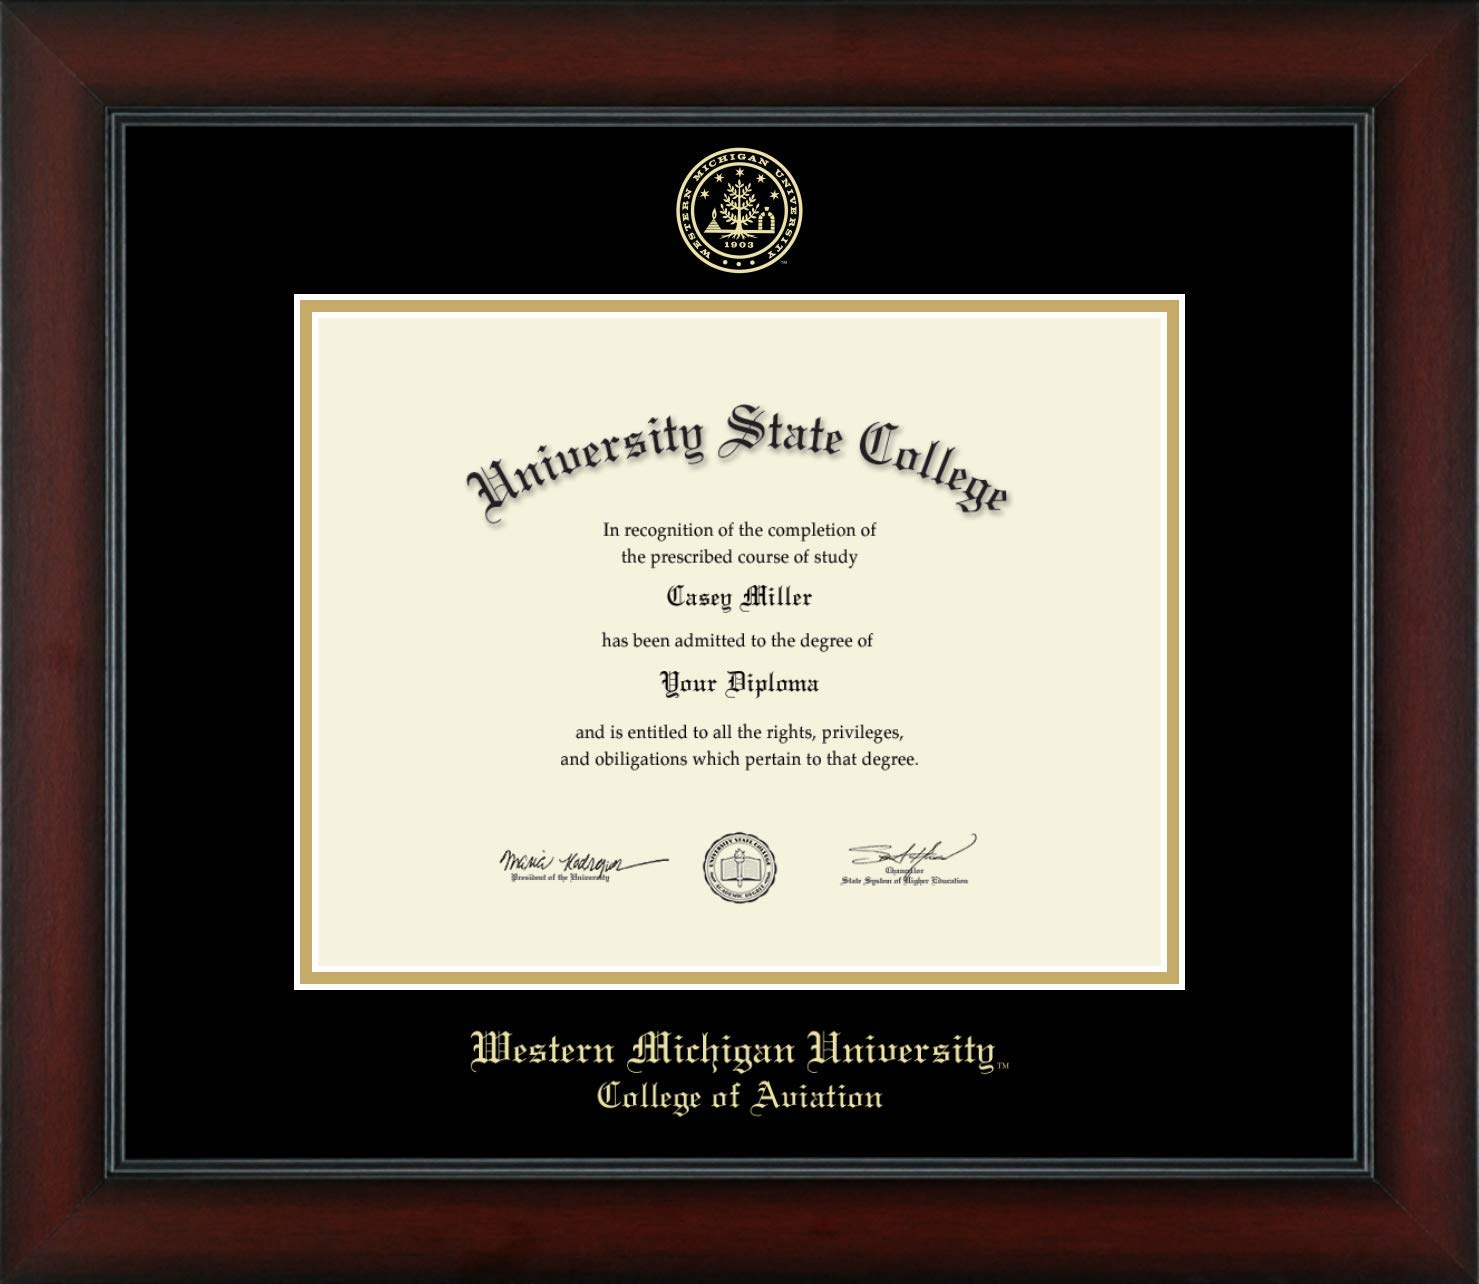 Western Michigan University College of Aviation - Officially Licensed - Gold Embossed Diploma Frame - Diploma Size 11'' x 8.5''